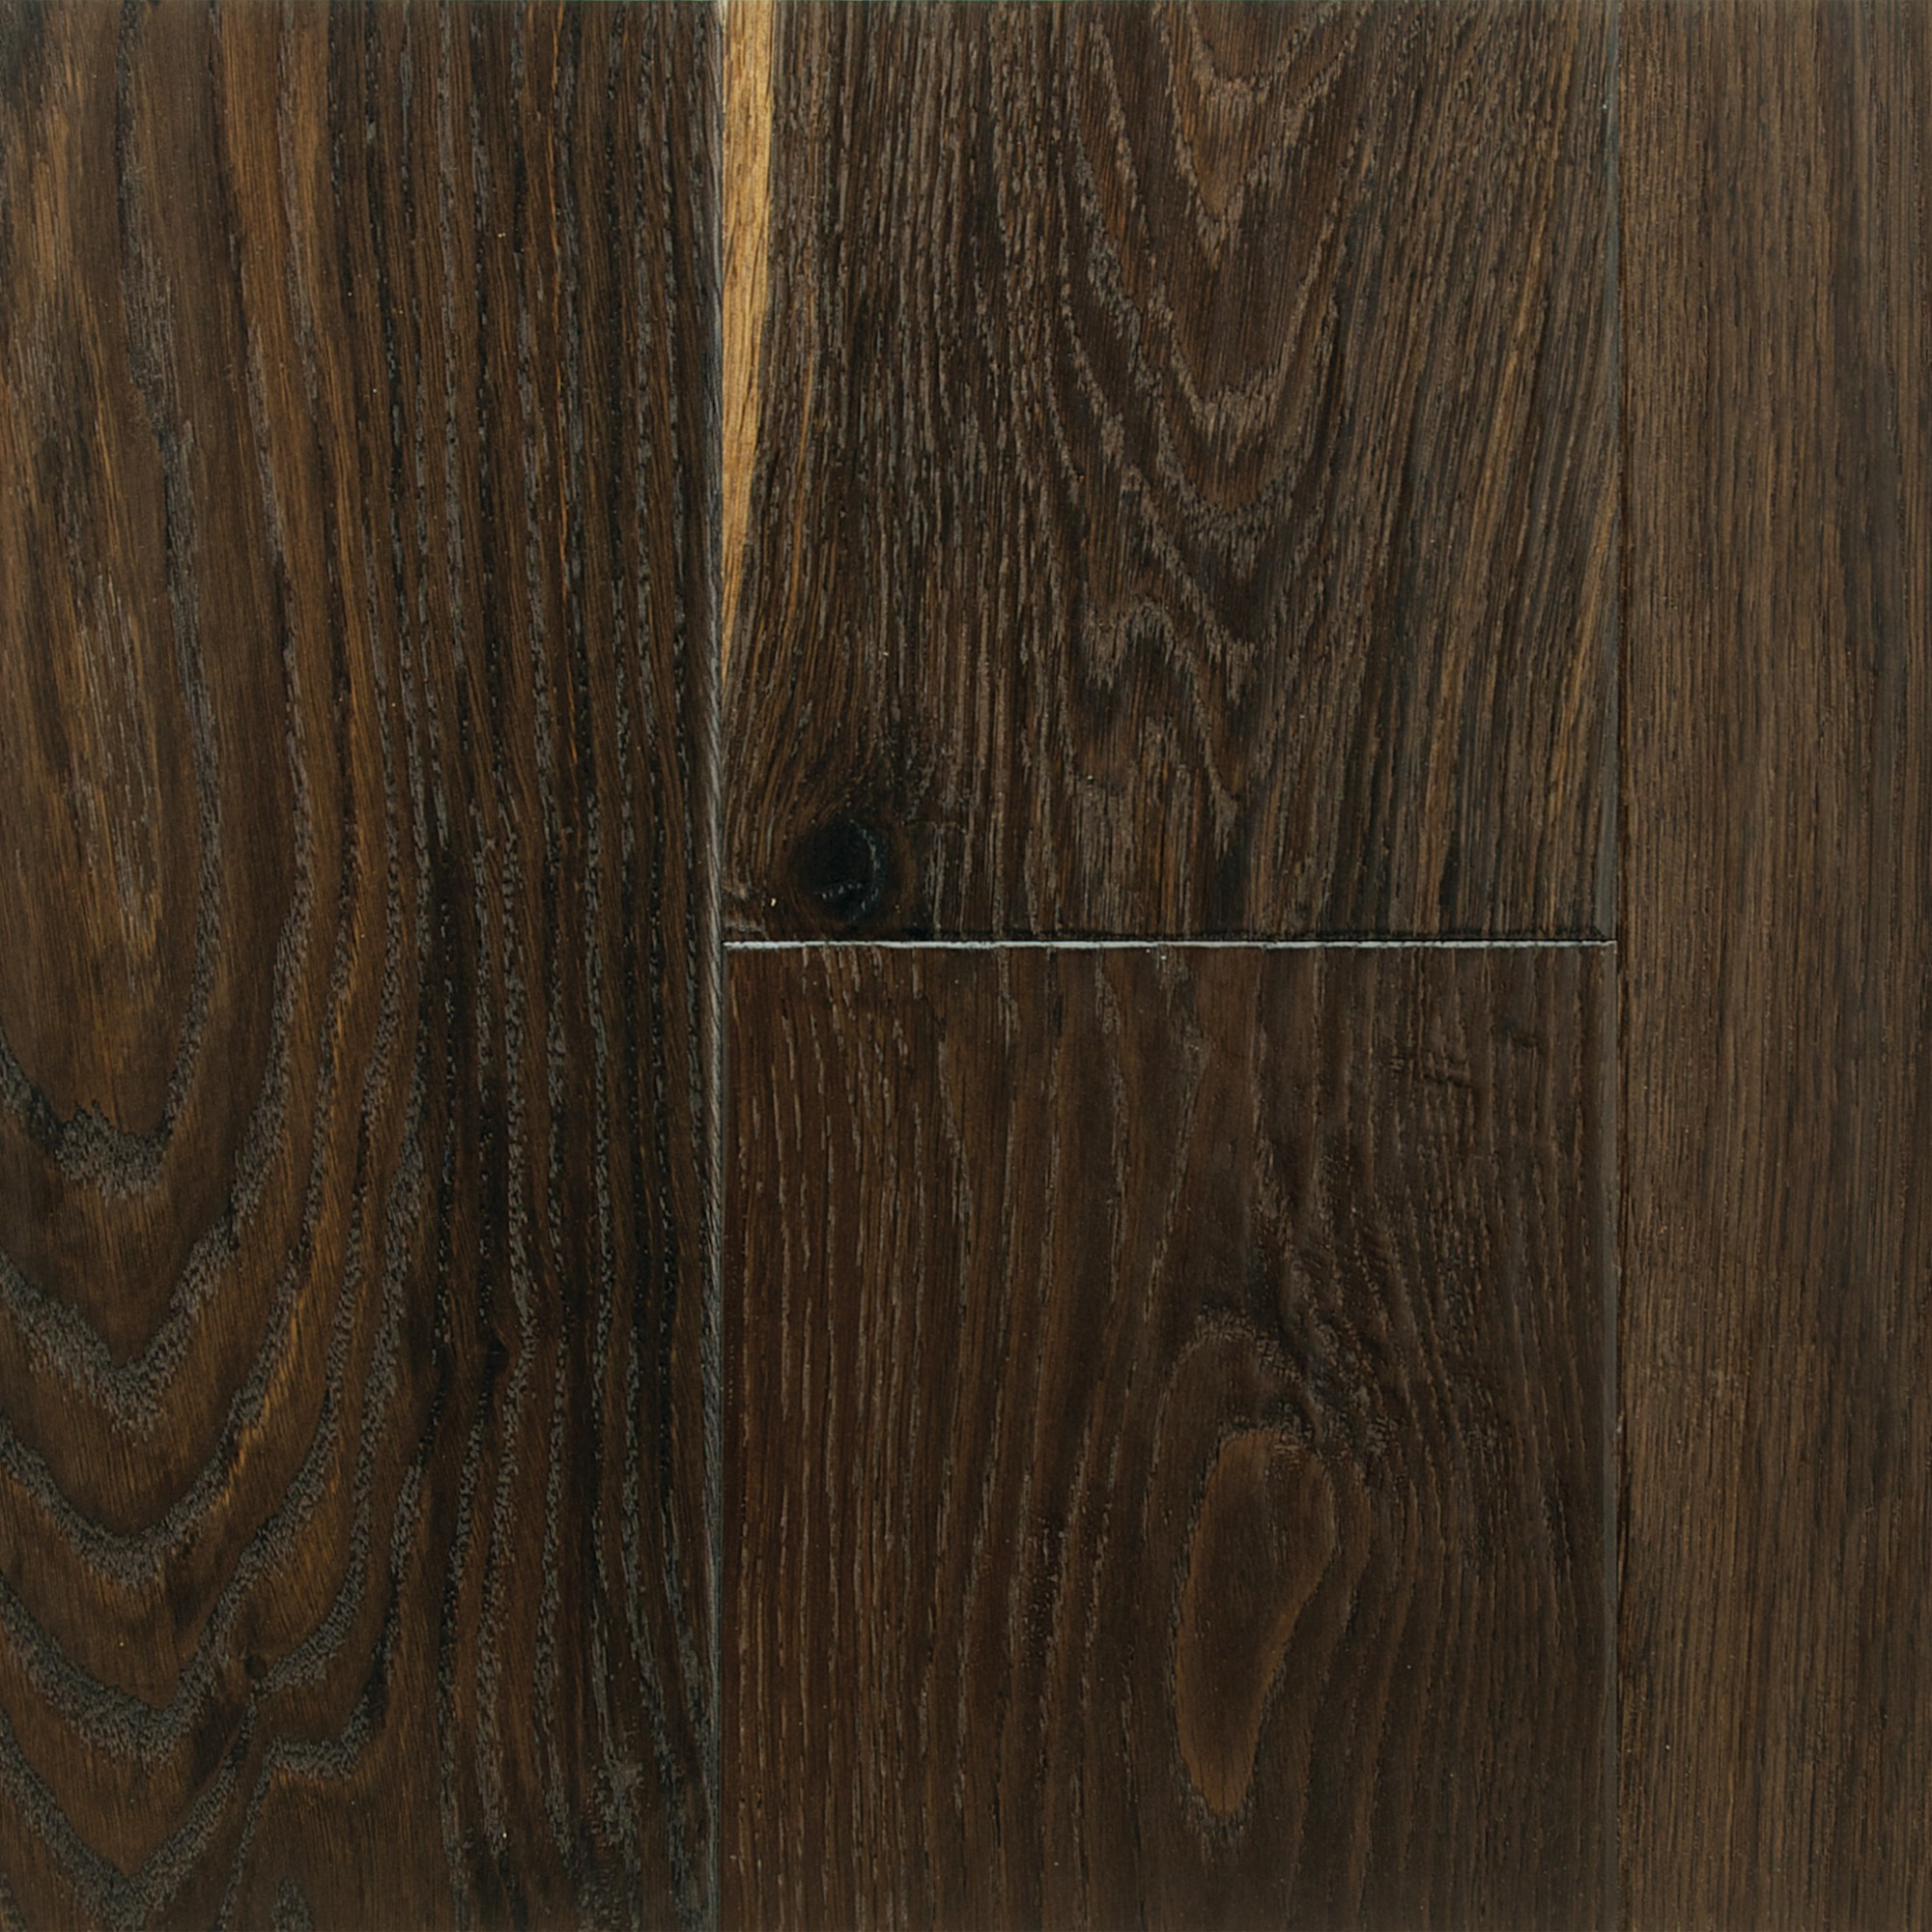 Fumed White Oak Old Oak Hand Scraped Vintage Hardwood